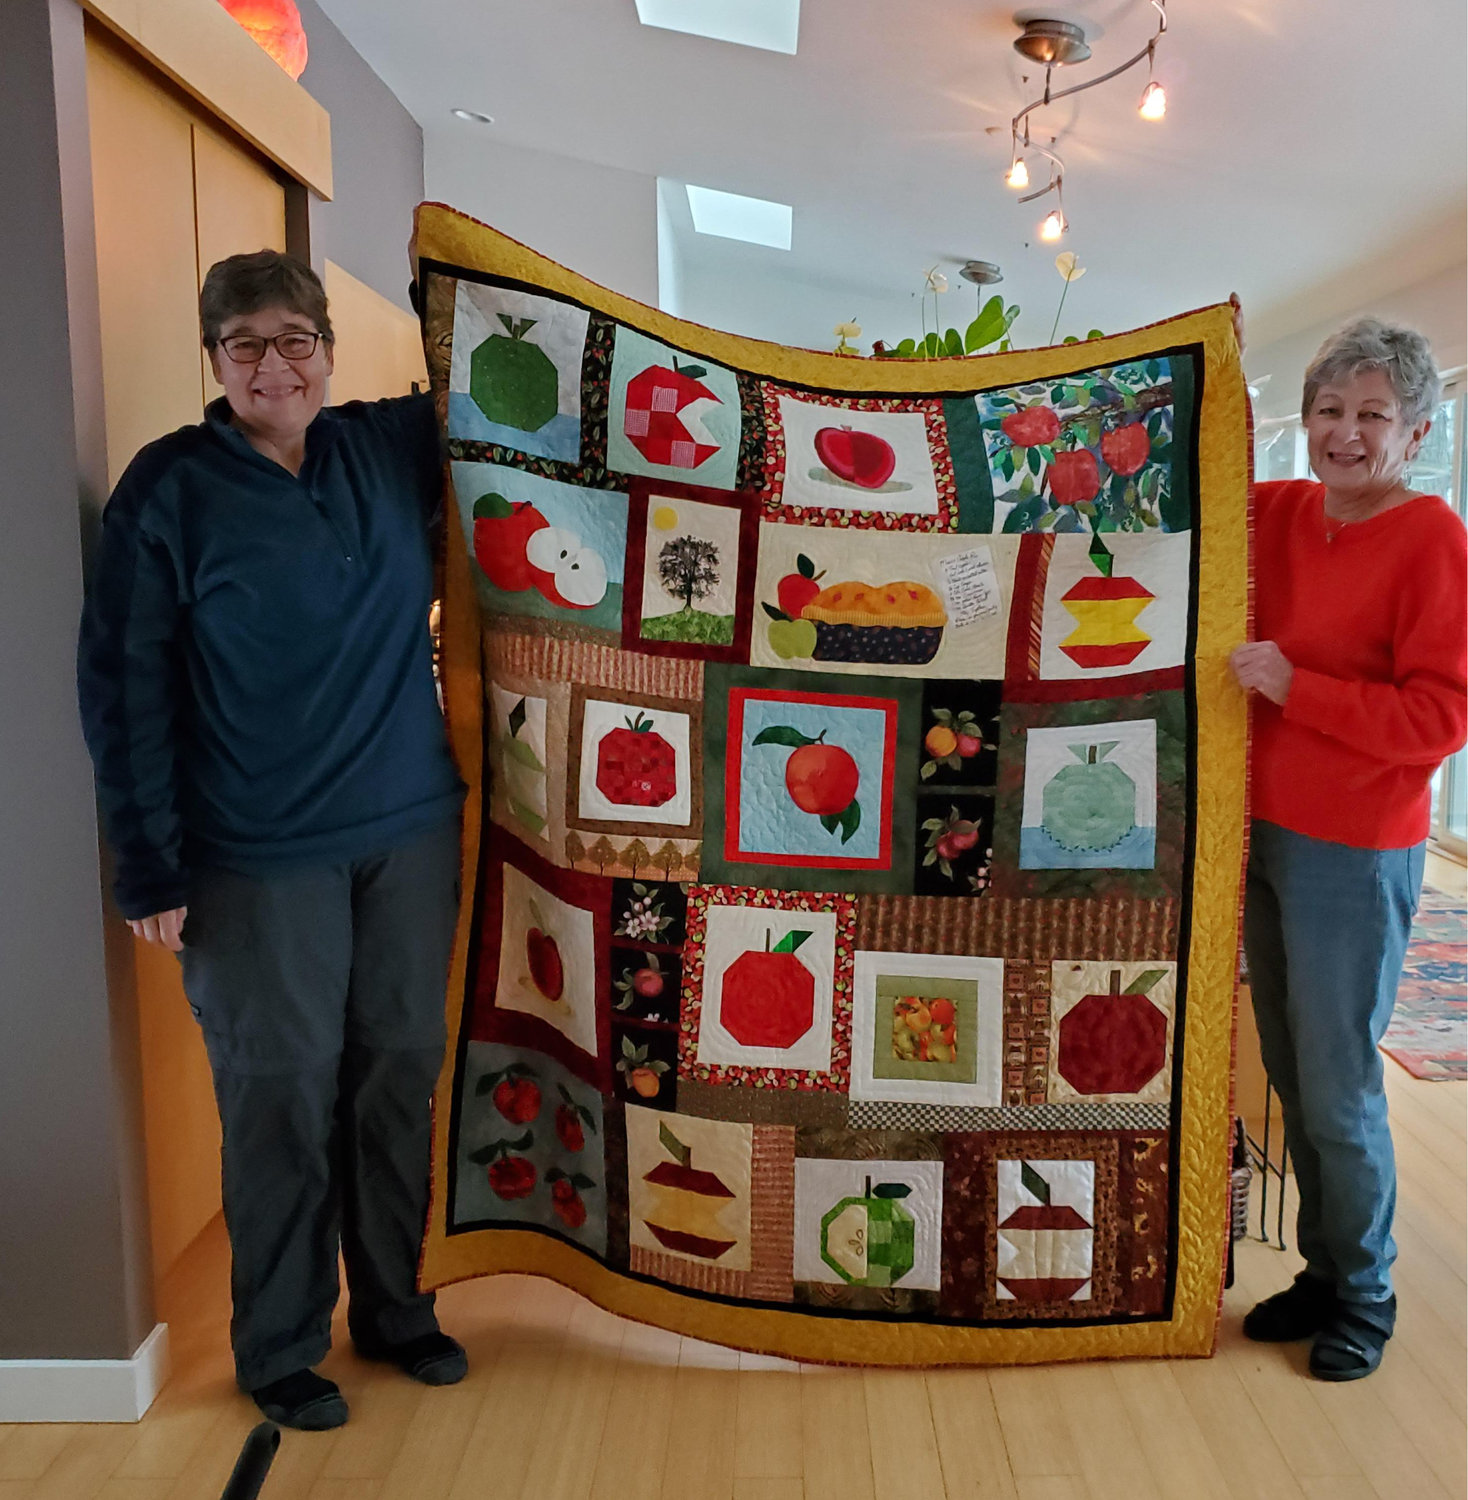 Bronwyn Glor, l., held the winning raffle ticket for the Circle of Care quilt. She is seen here with Galen Wood.